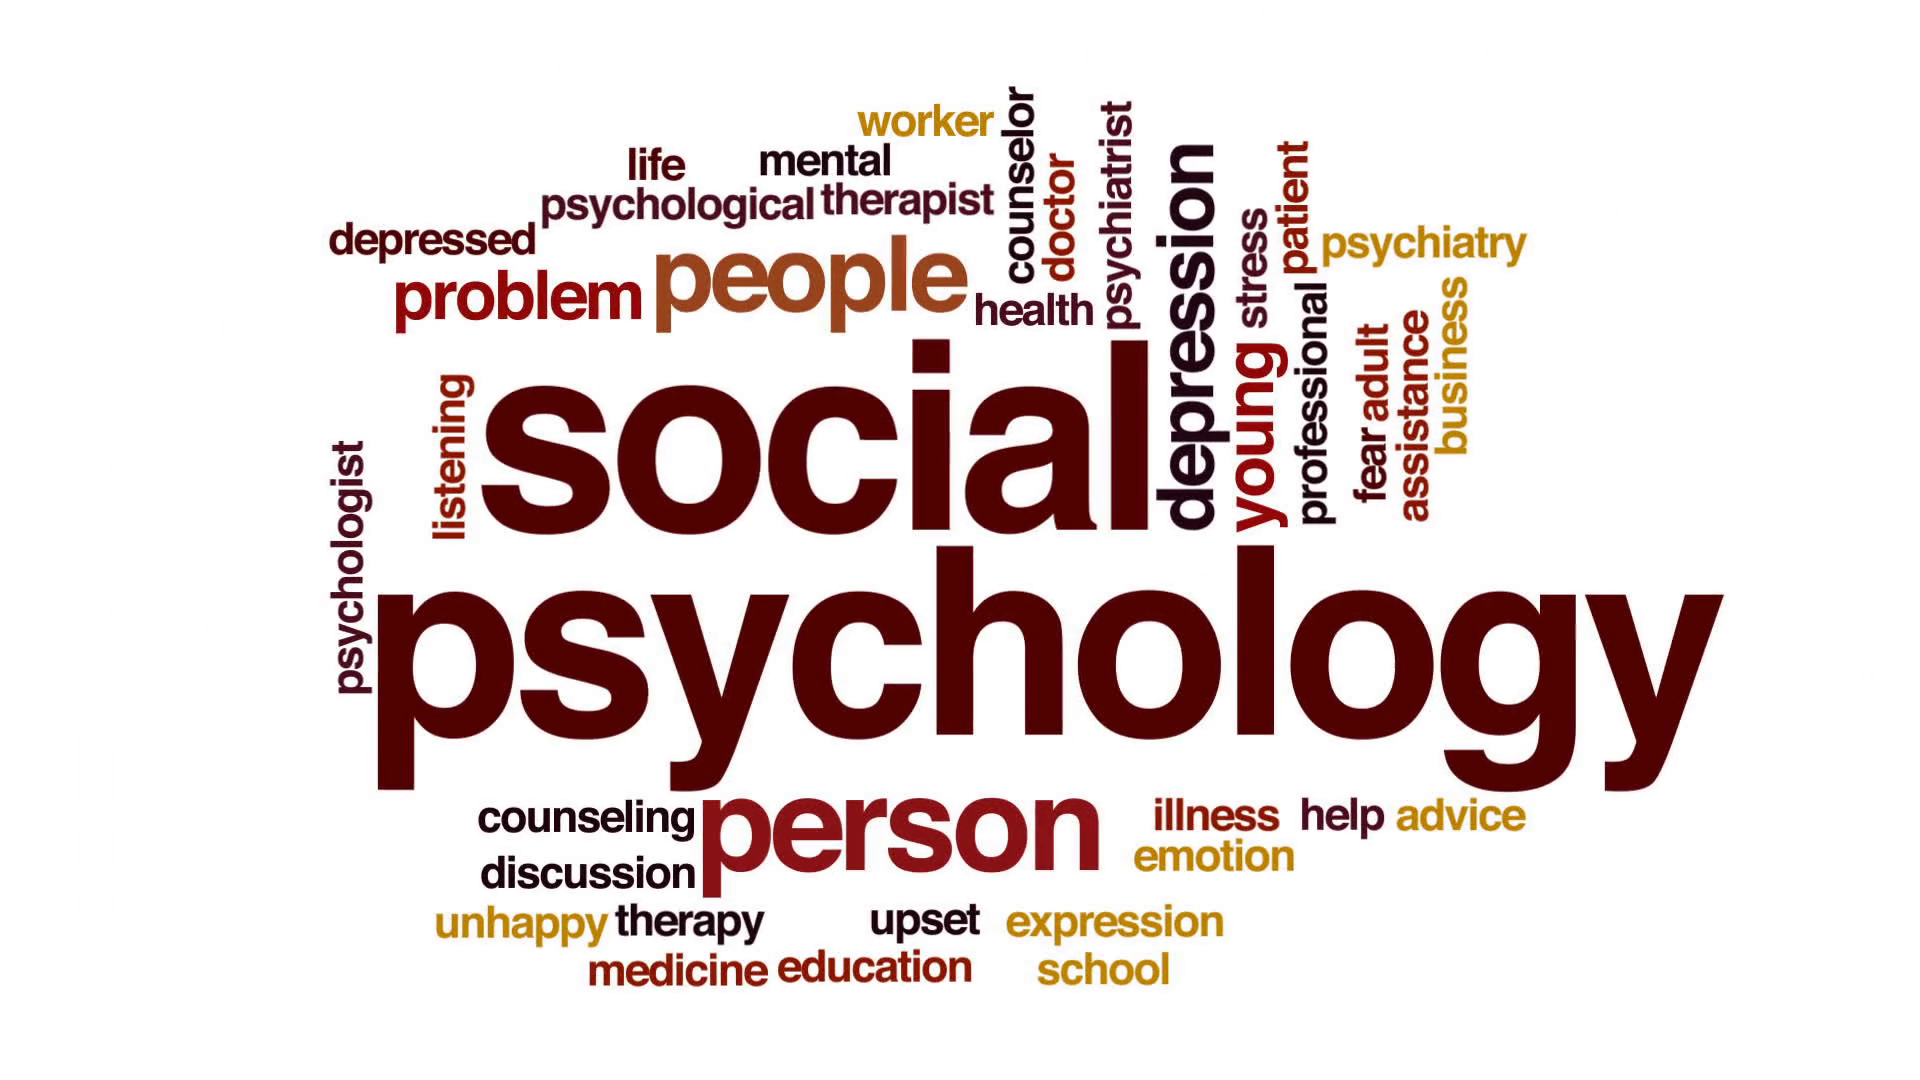 psychological research paper The university of melbournes school of psychological sciences, grants access to our great research resources ethics what is ethics ethics is the branch of study dealing with what is best research paper writers website for masters the ethics in psychological research paper proper course of action for man.